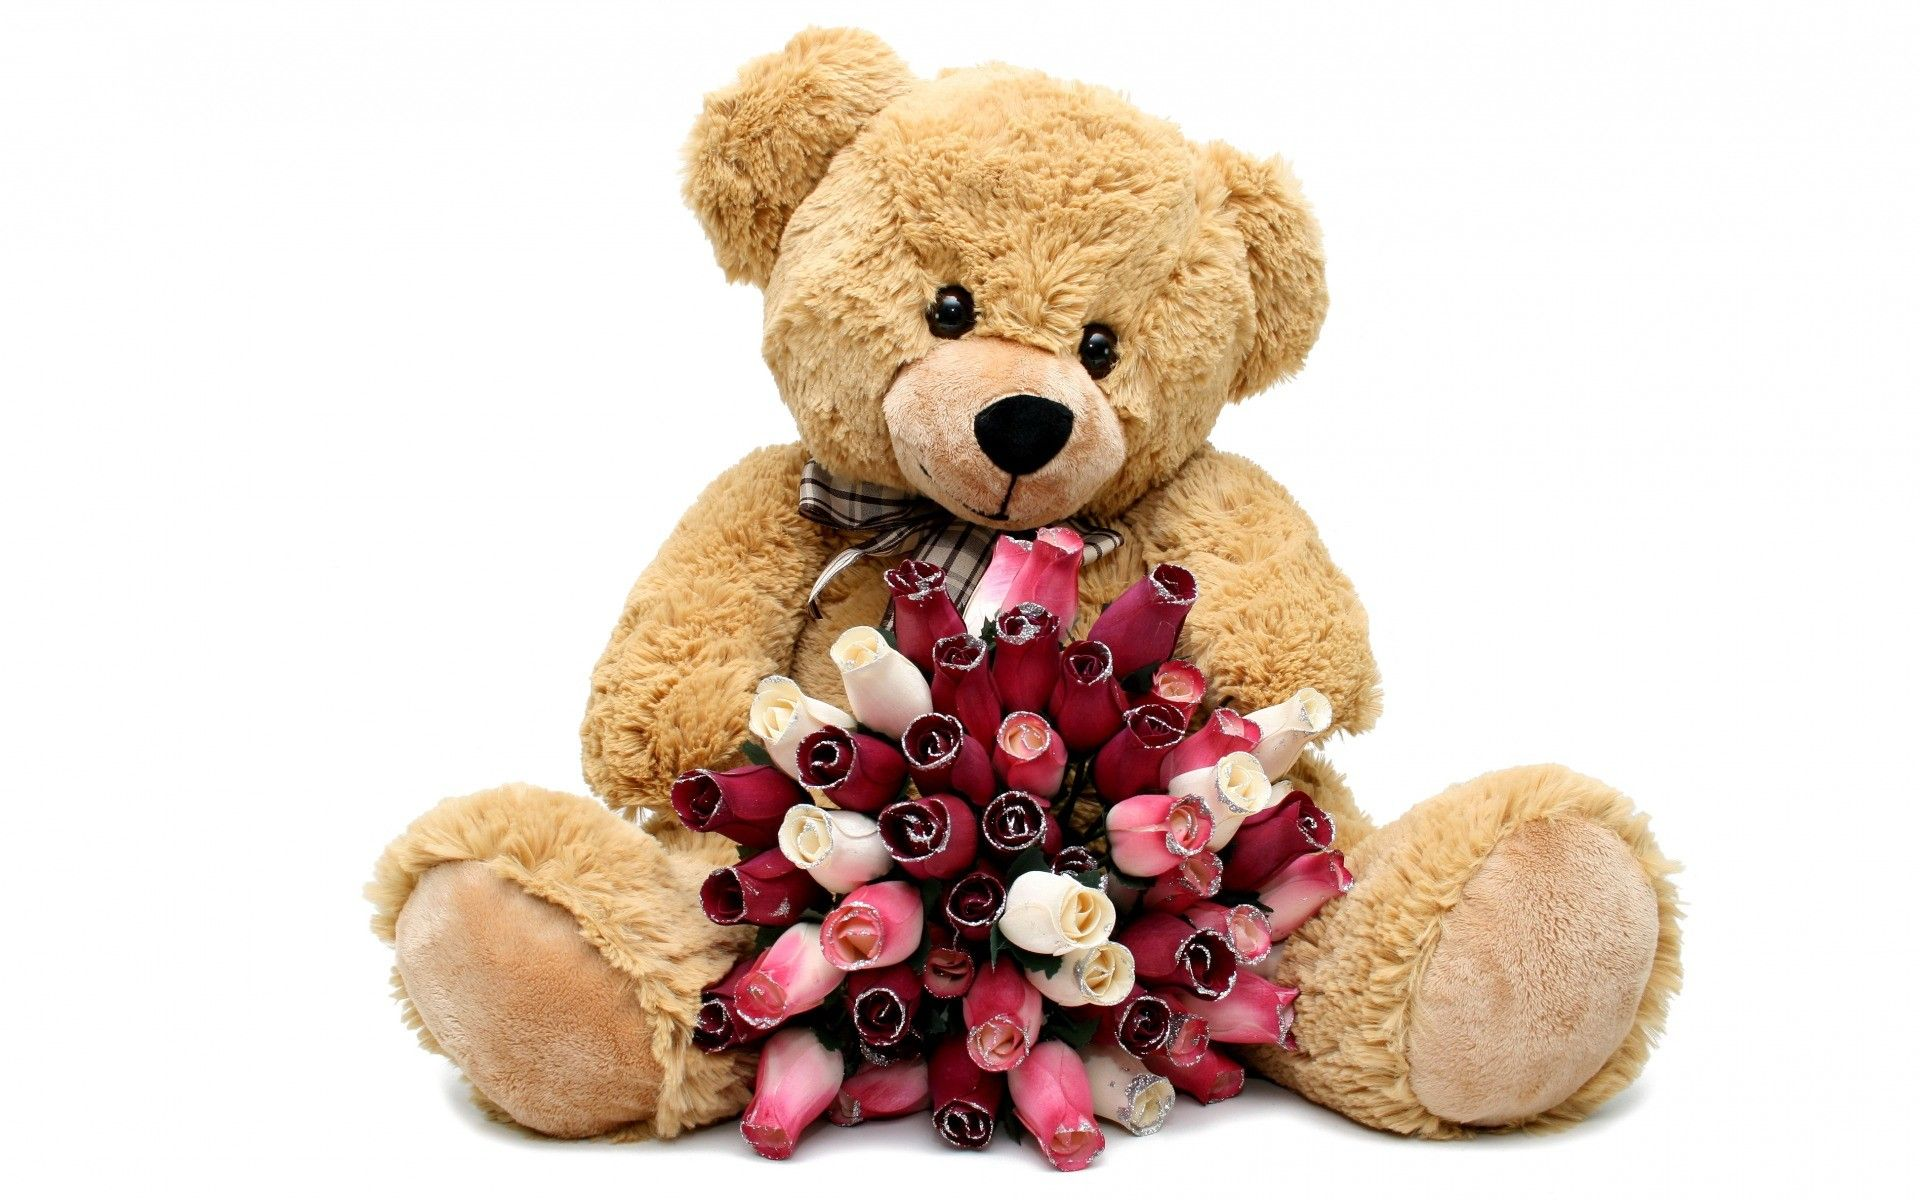 toy bear with bouquet of red roses